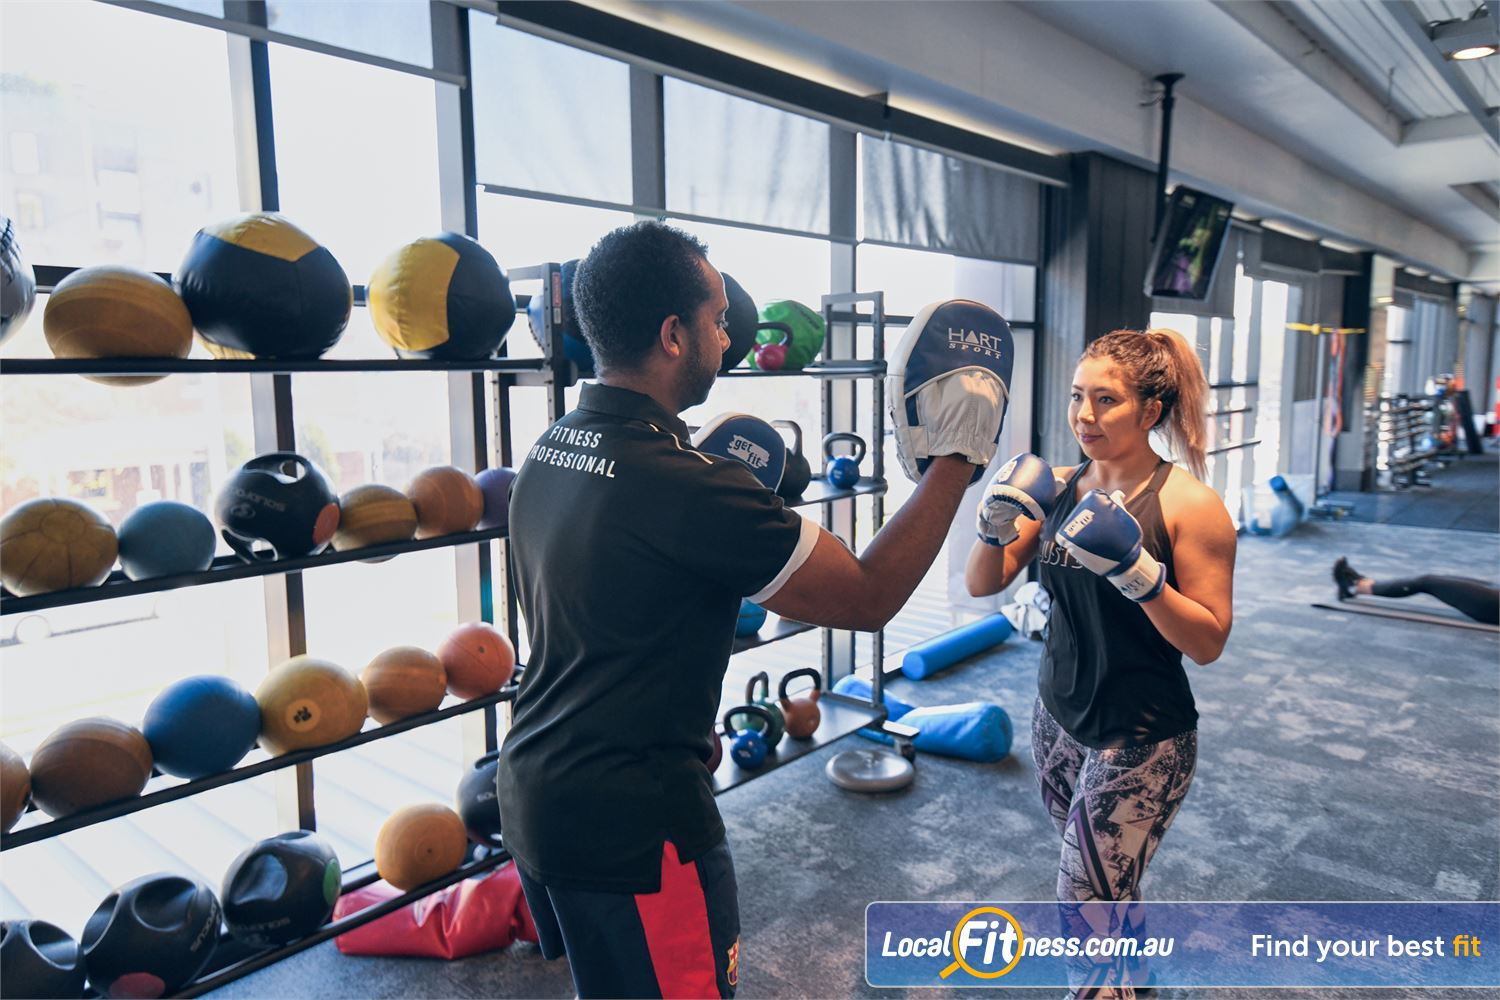 Goodlife Health Clubs Near Richmond North Our Port Melbourne personal trainers can take you through a boxing routine.